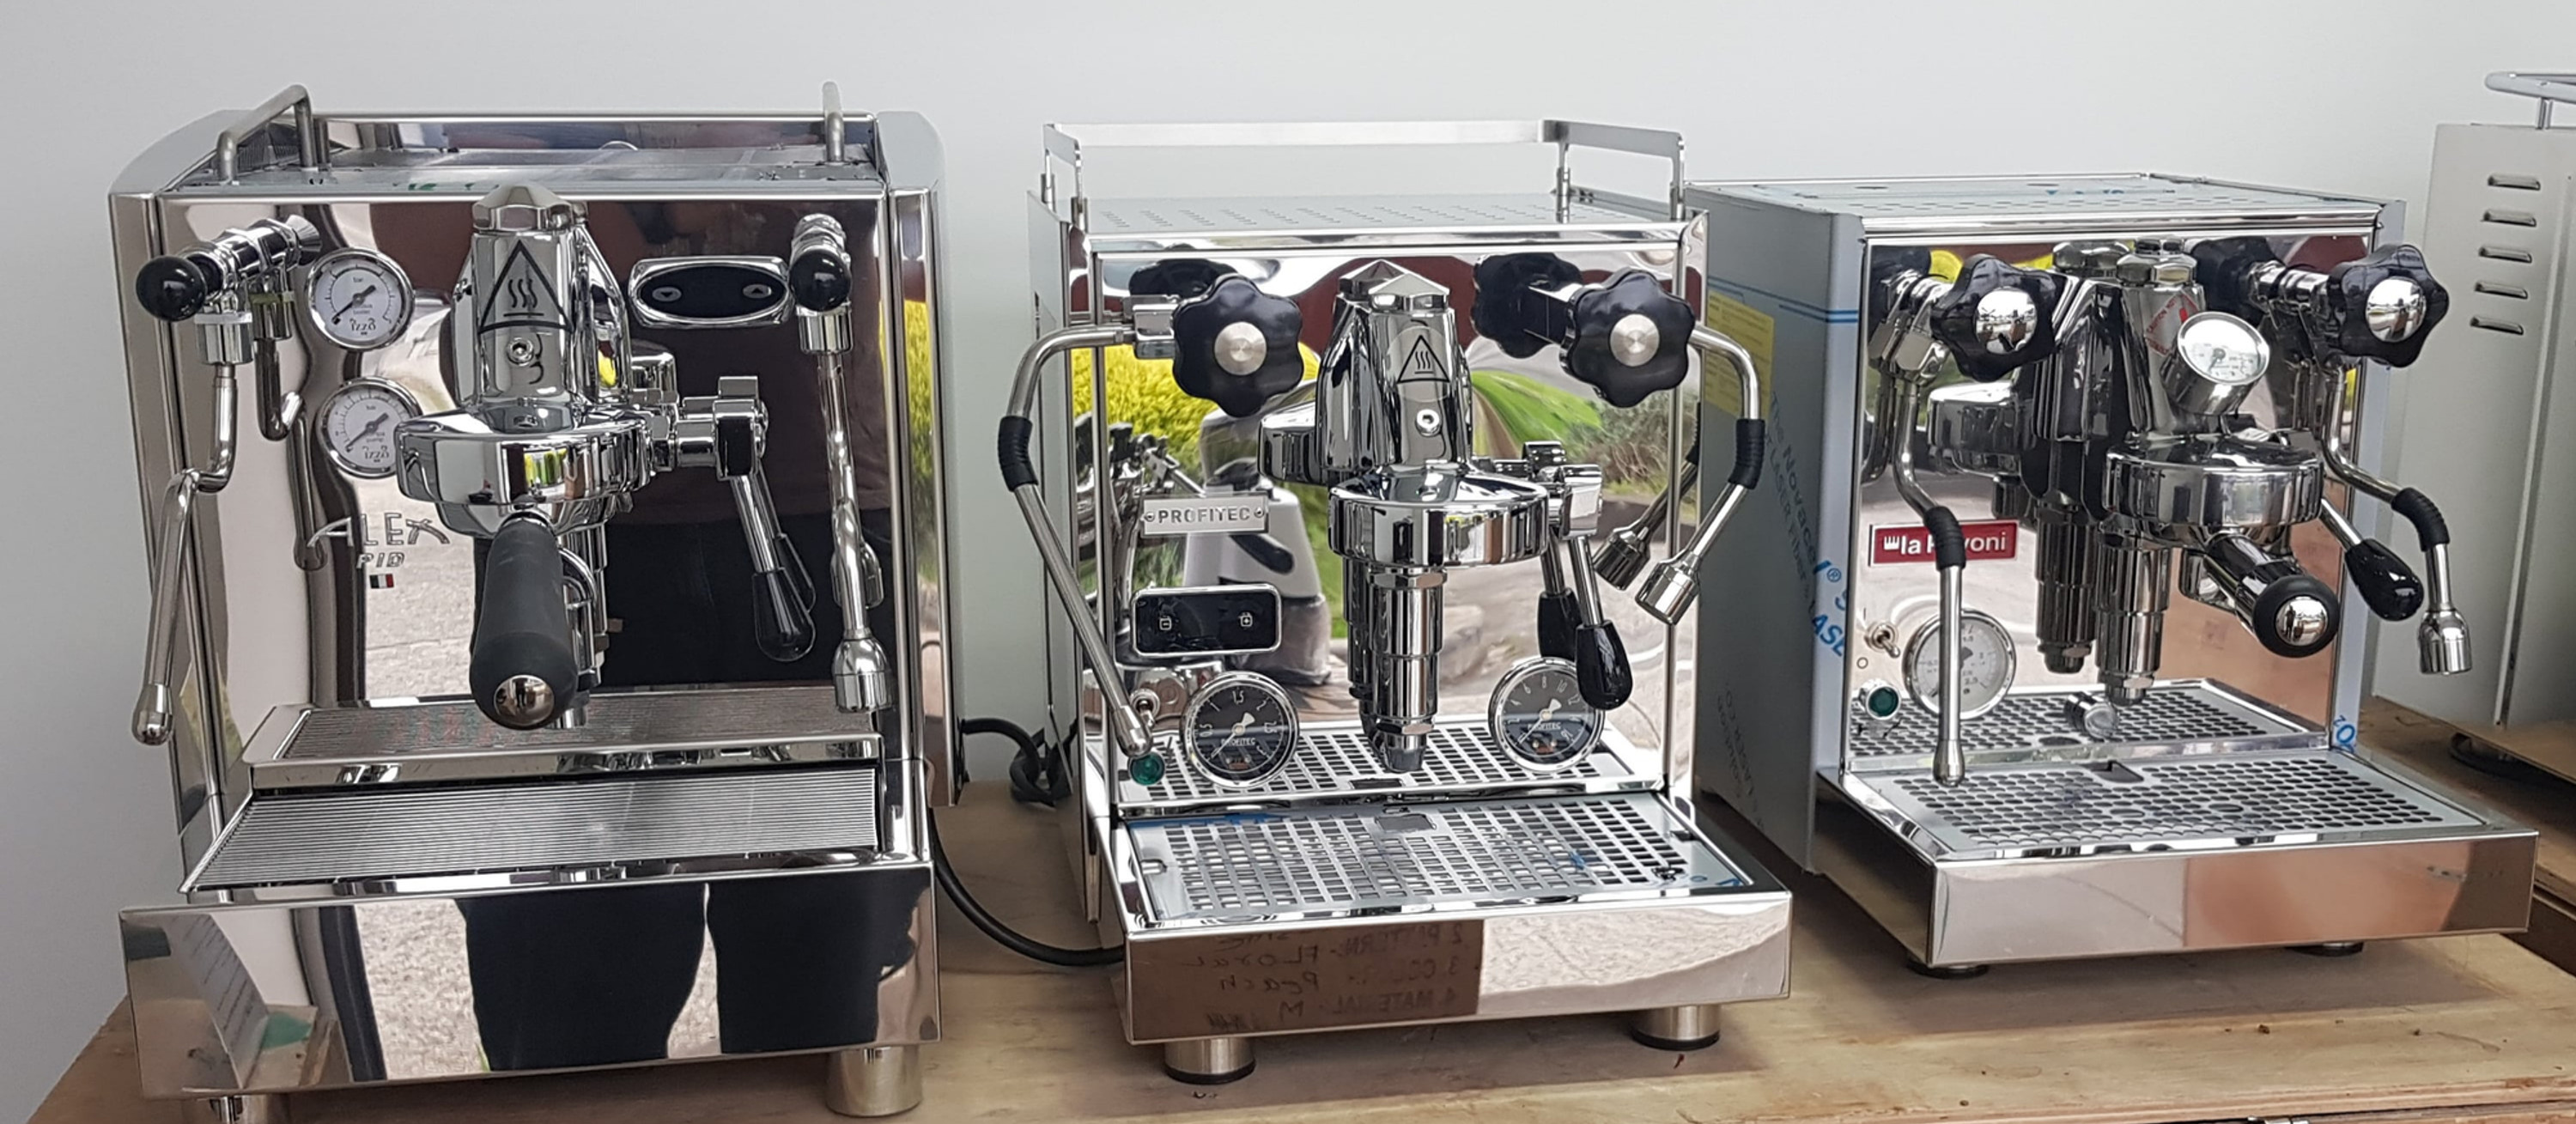 Consultation for a new coffee machine